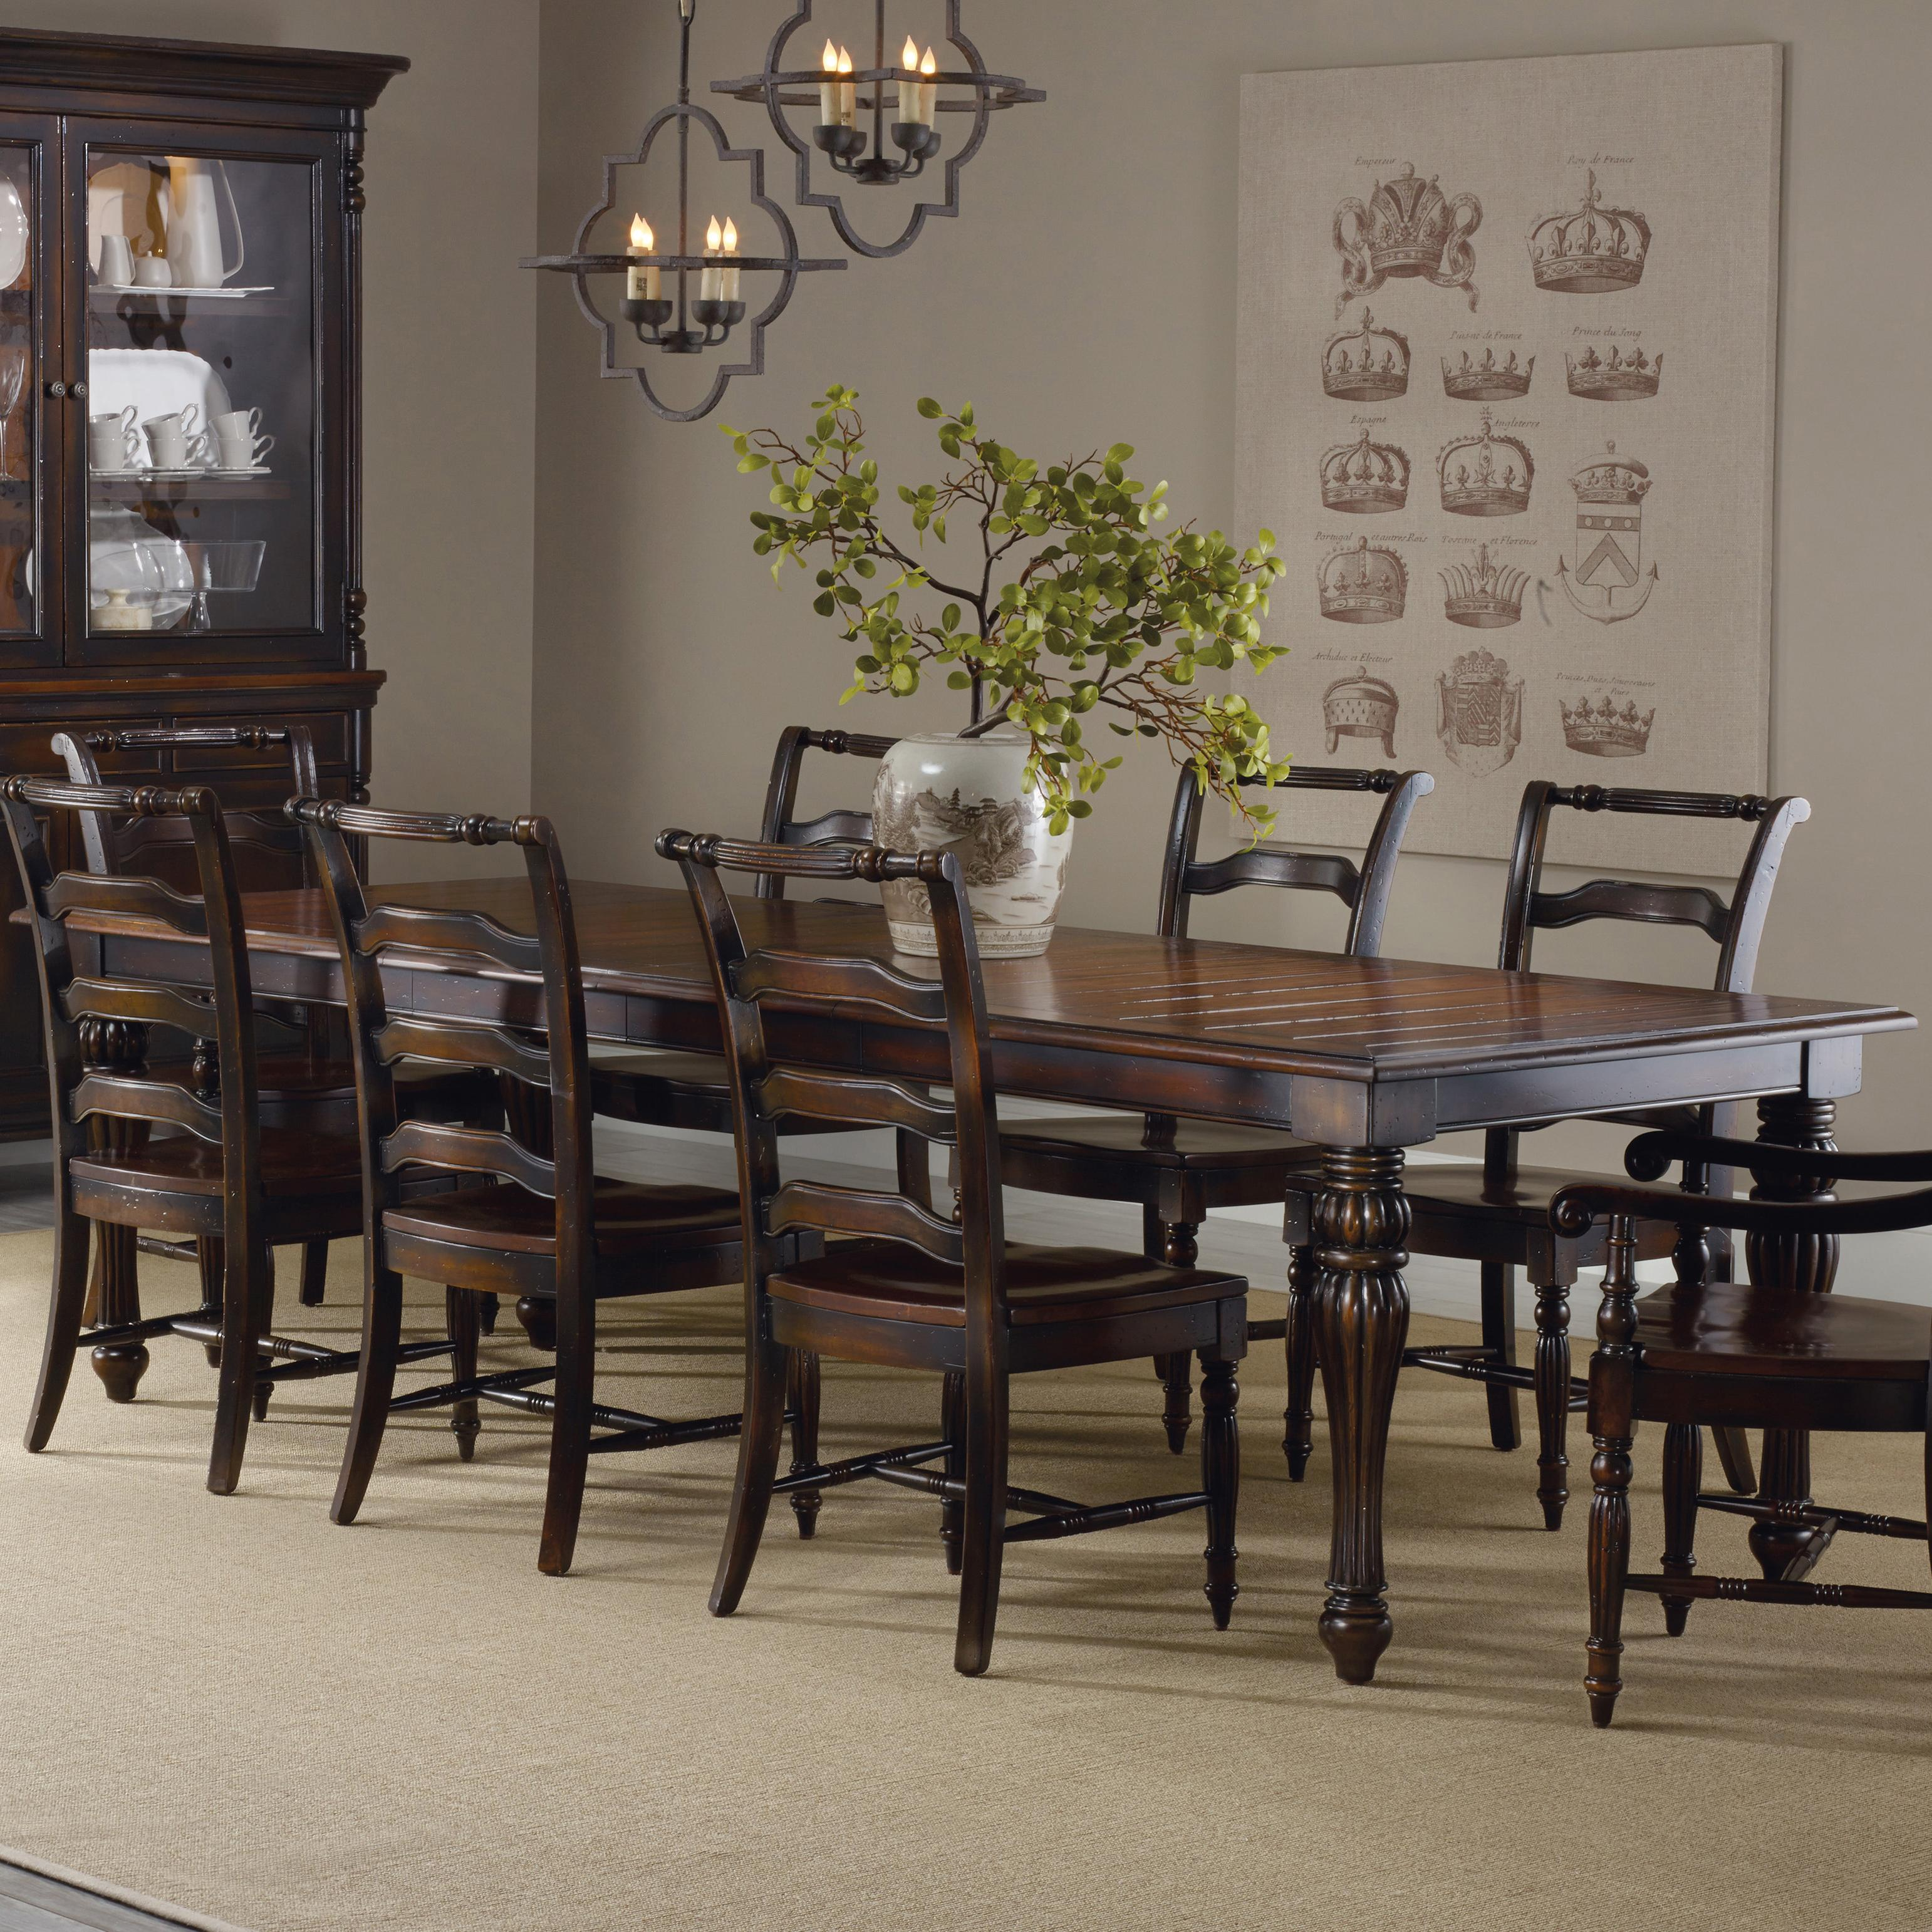 Hooker Furniture Eastridge Rectangle Dining Table - Item Number: 5177-75200